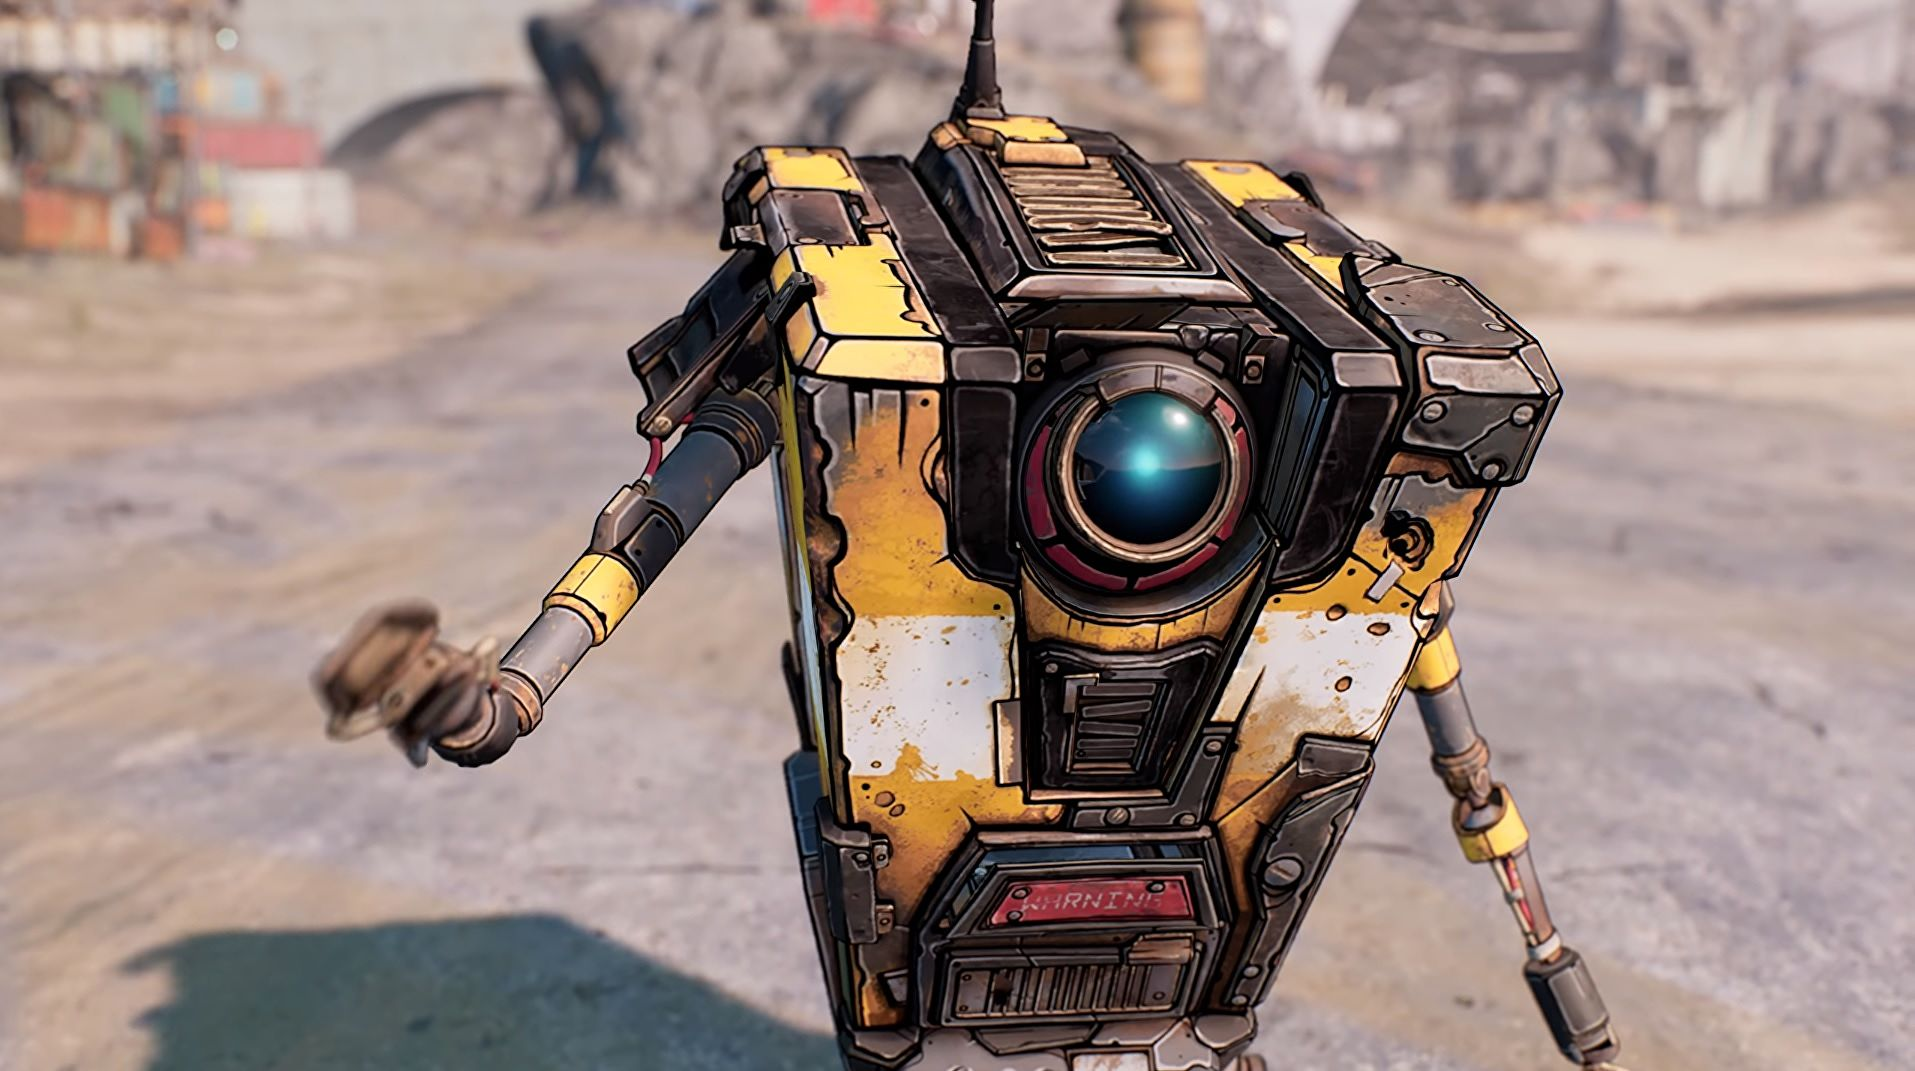 Jack Black cast as Claptrap in the Borderlands movie